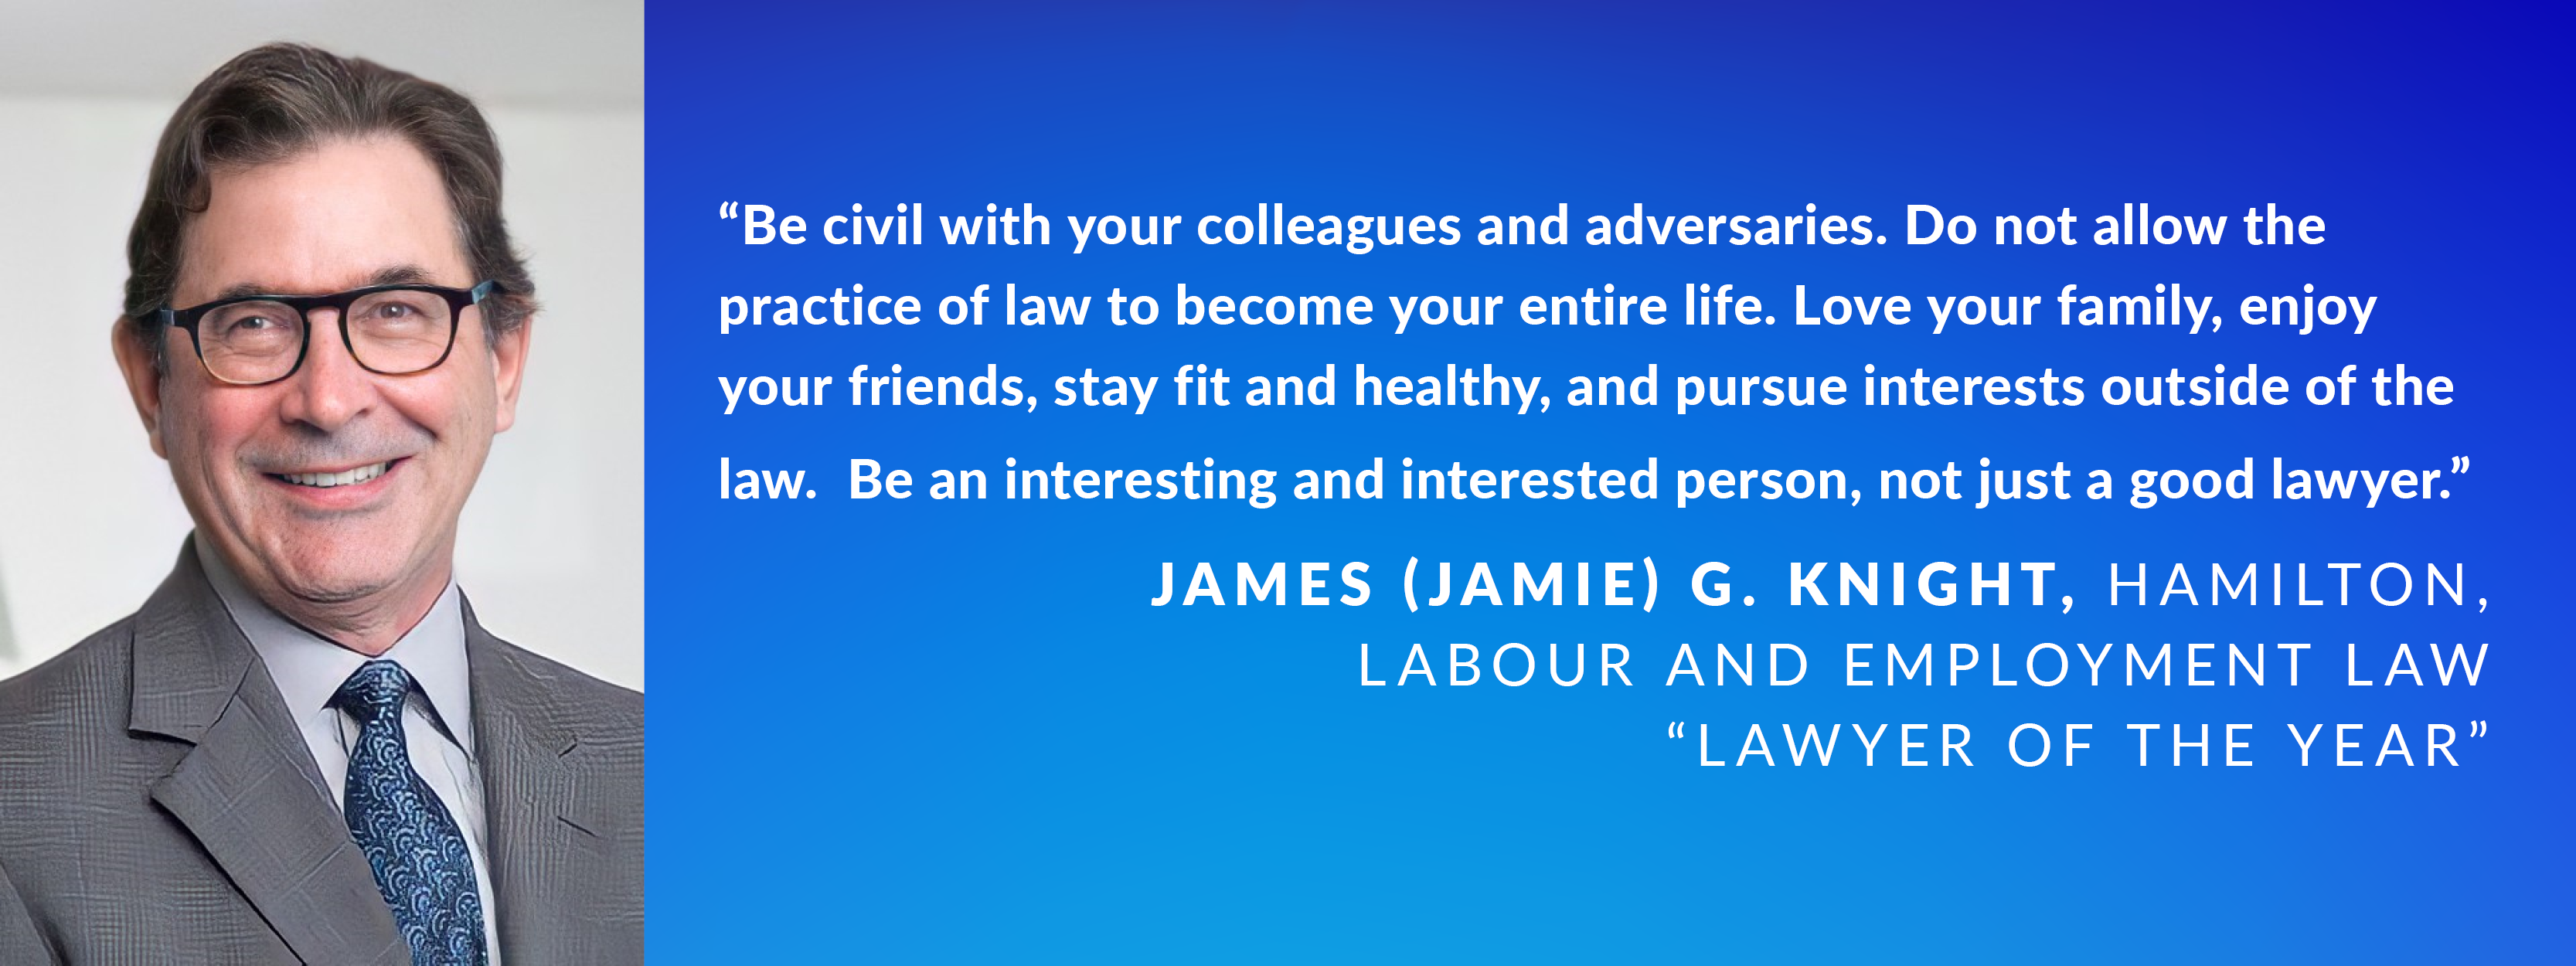 James (Jamie) G. Knight, Hamilton, Labour and Employment Law Lawyer of the Year